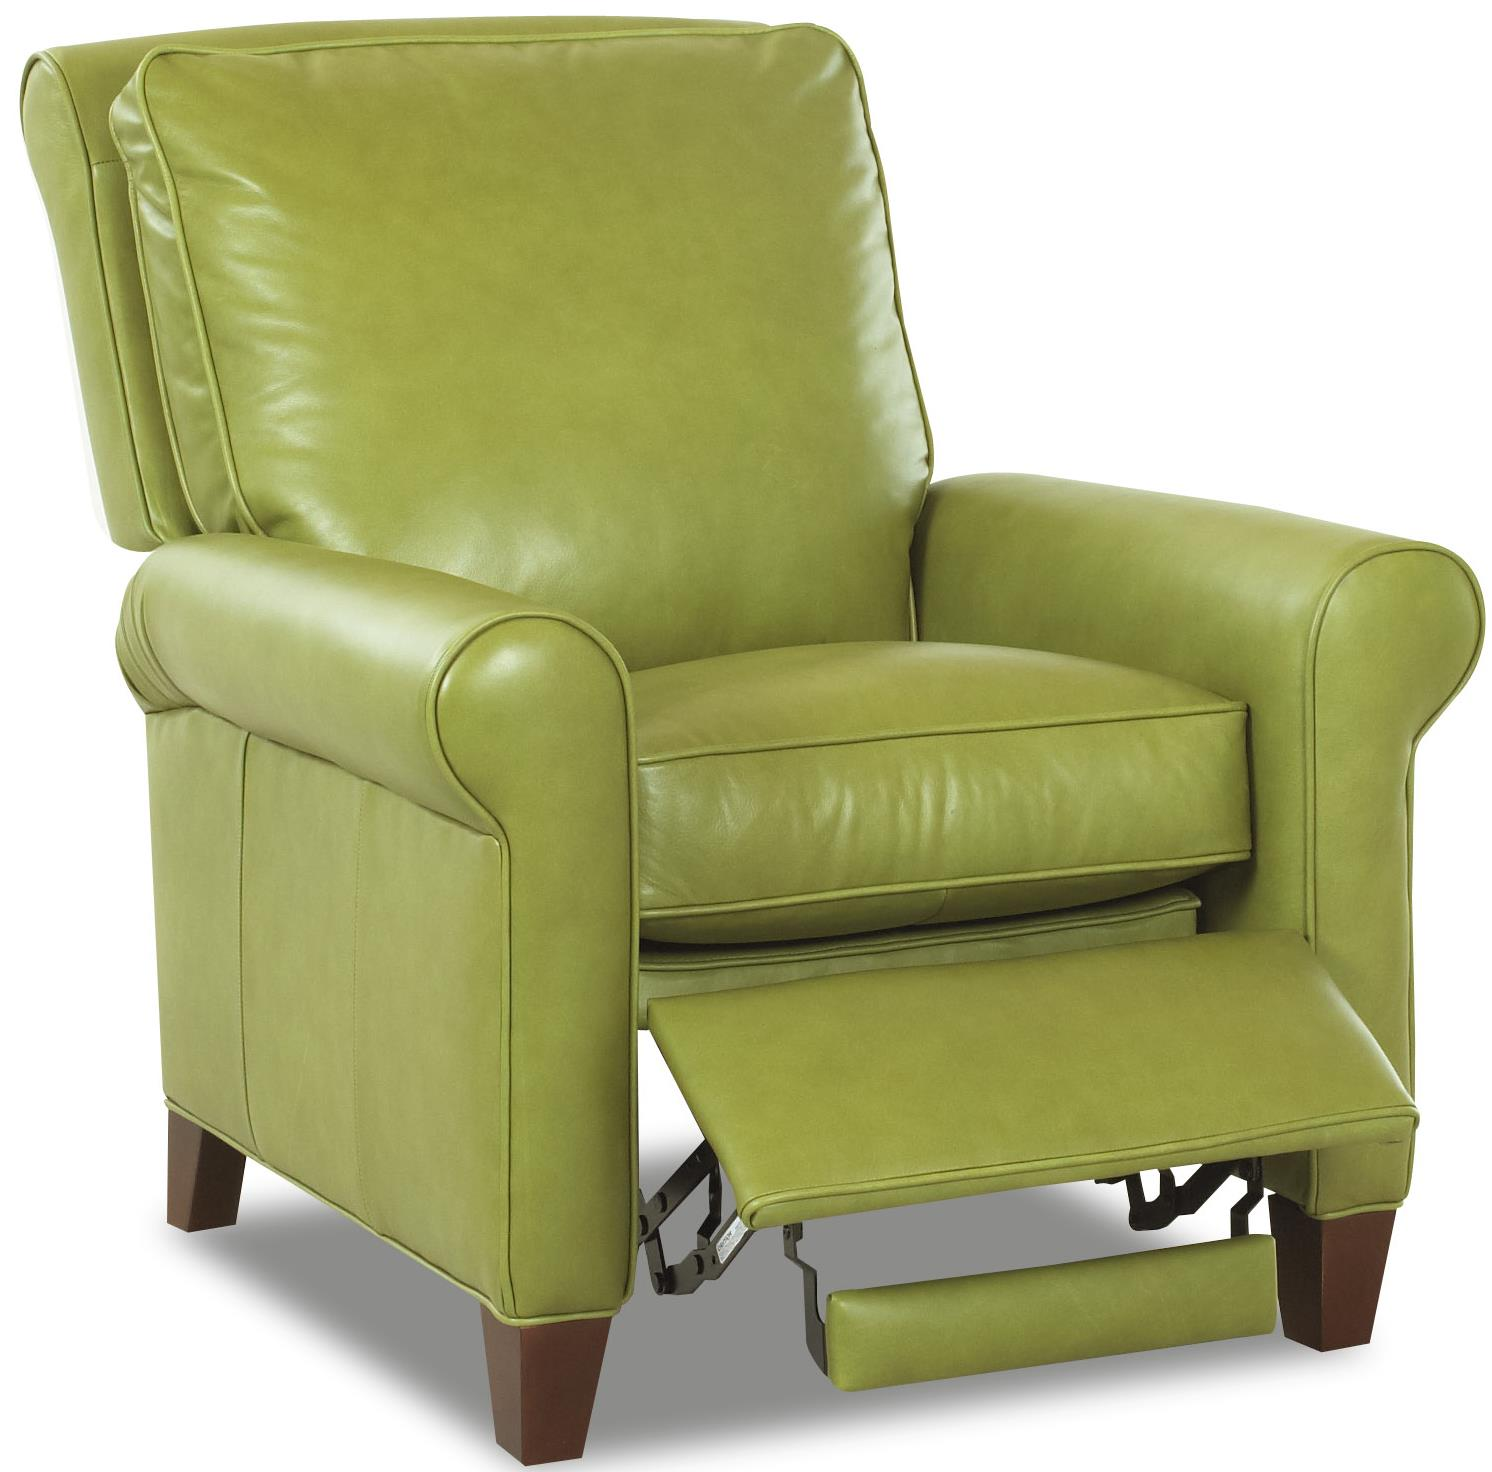 chair design with handle beach recliner comfort journey cl730p hlrc high leg